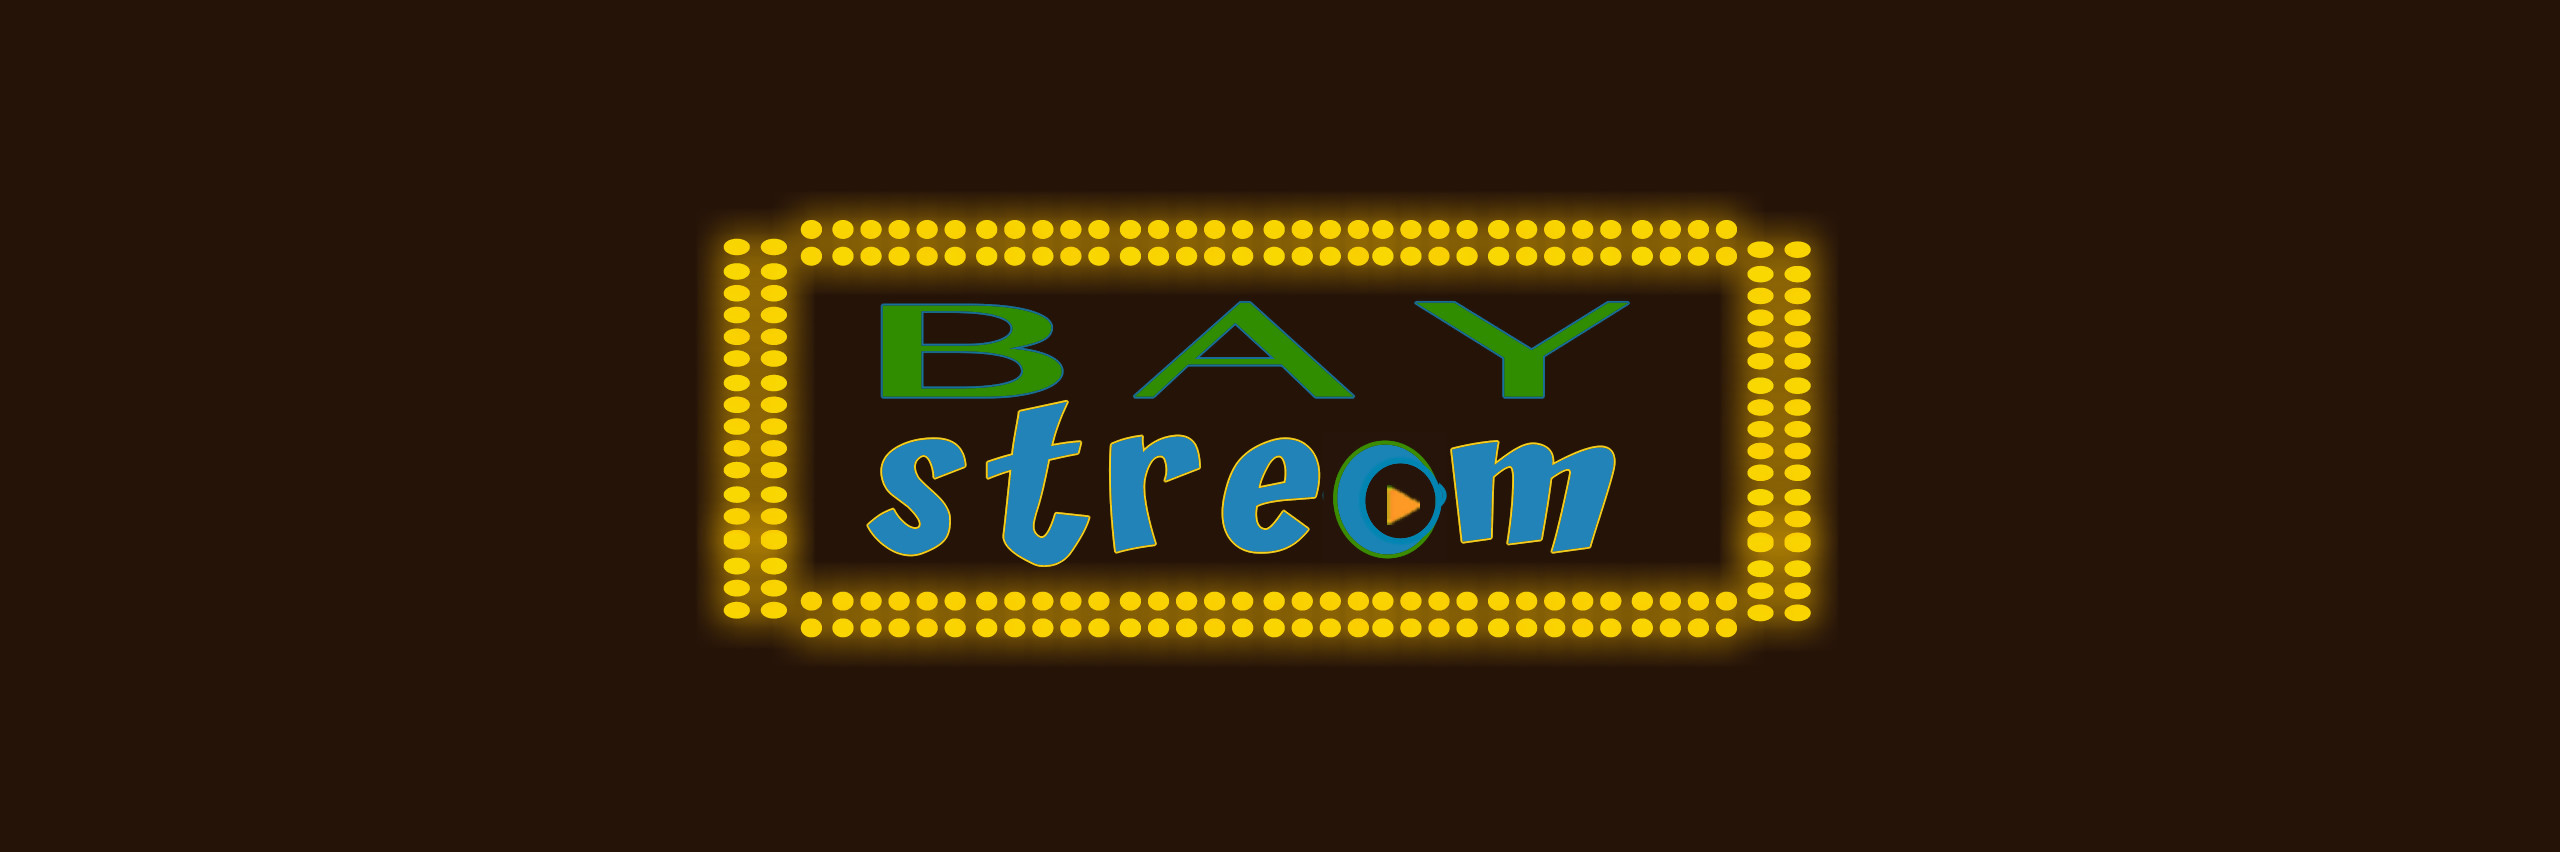 baystream.com.au